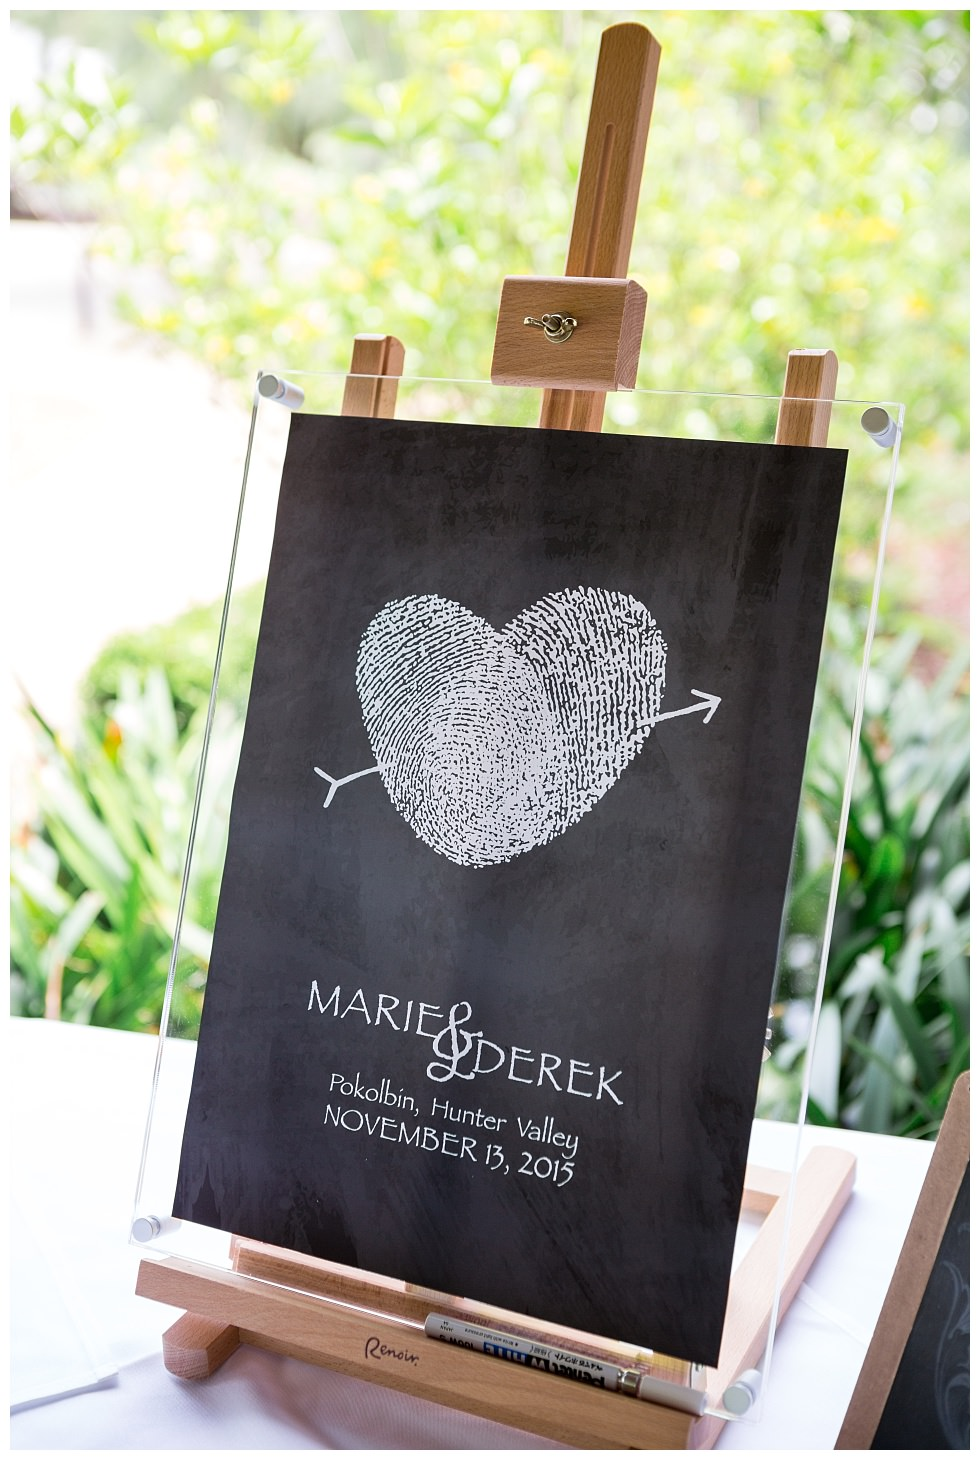 ArtyJ Photography   © Popcorn Photography – Used with Permission, The Guest House, Elopement, Spring Elopement, Pokolbin, Australia, NSW, Hunter Valley, Photography   Marie & Derek   Elopement